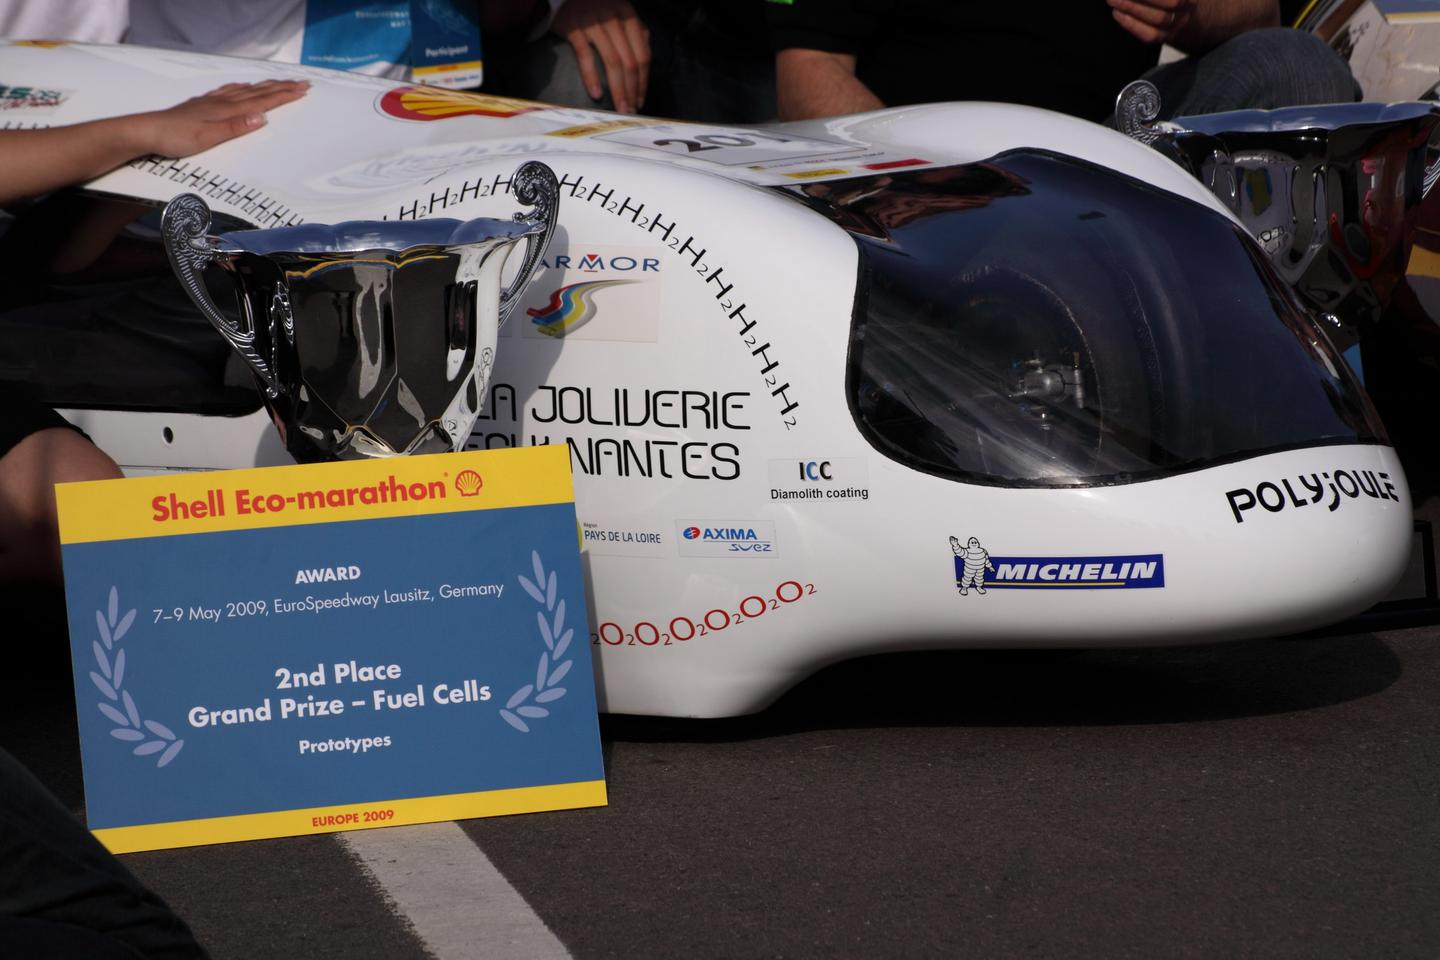 Team Polyjoule won second prize at last year's Eco Marathon